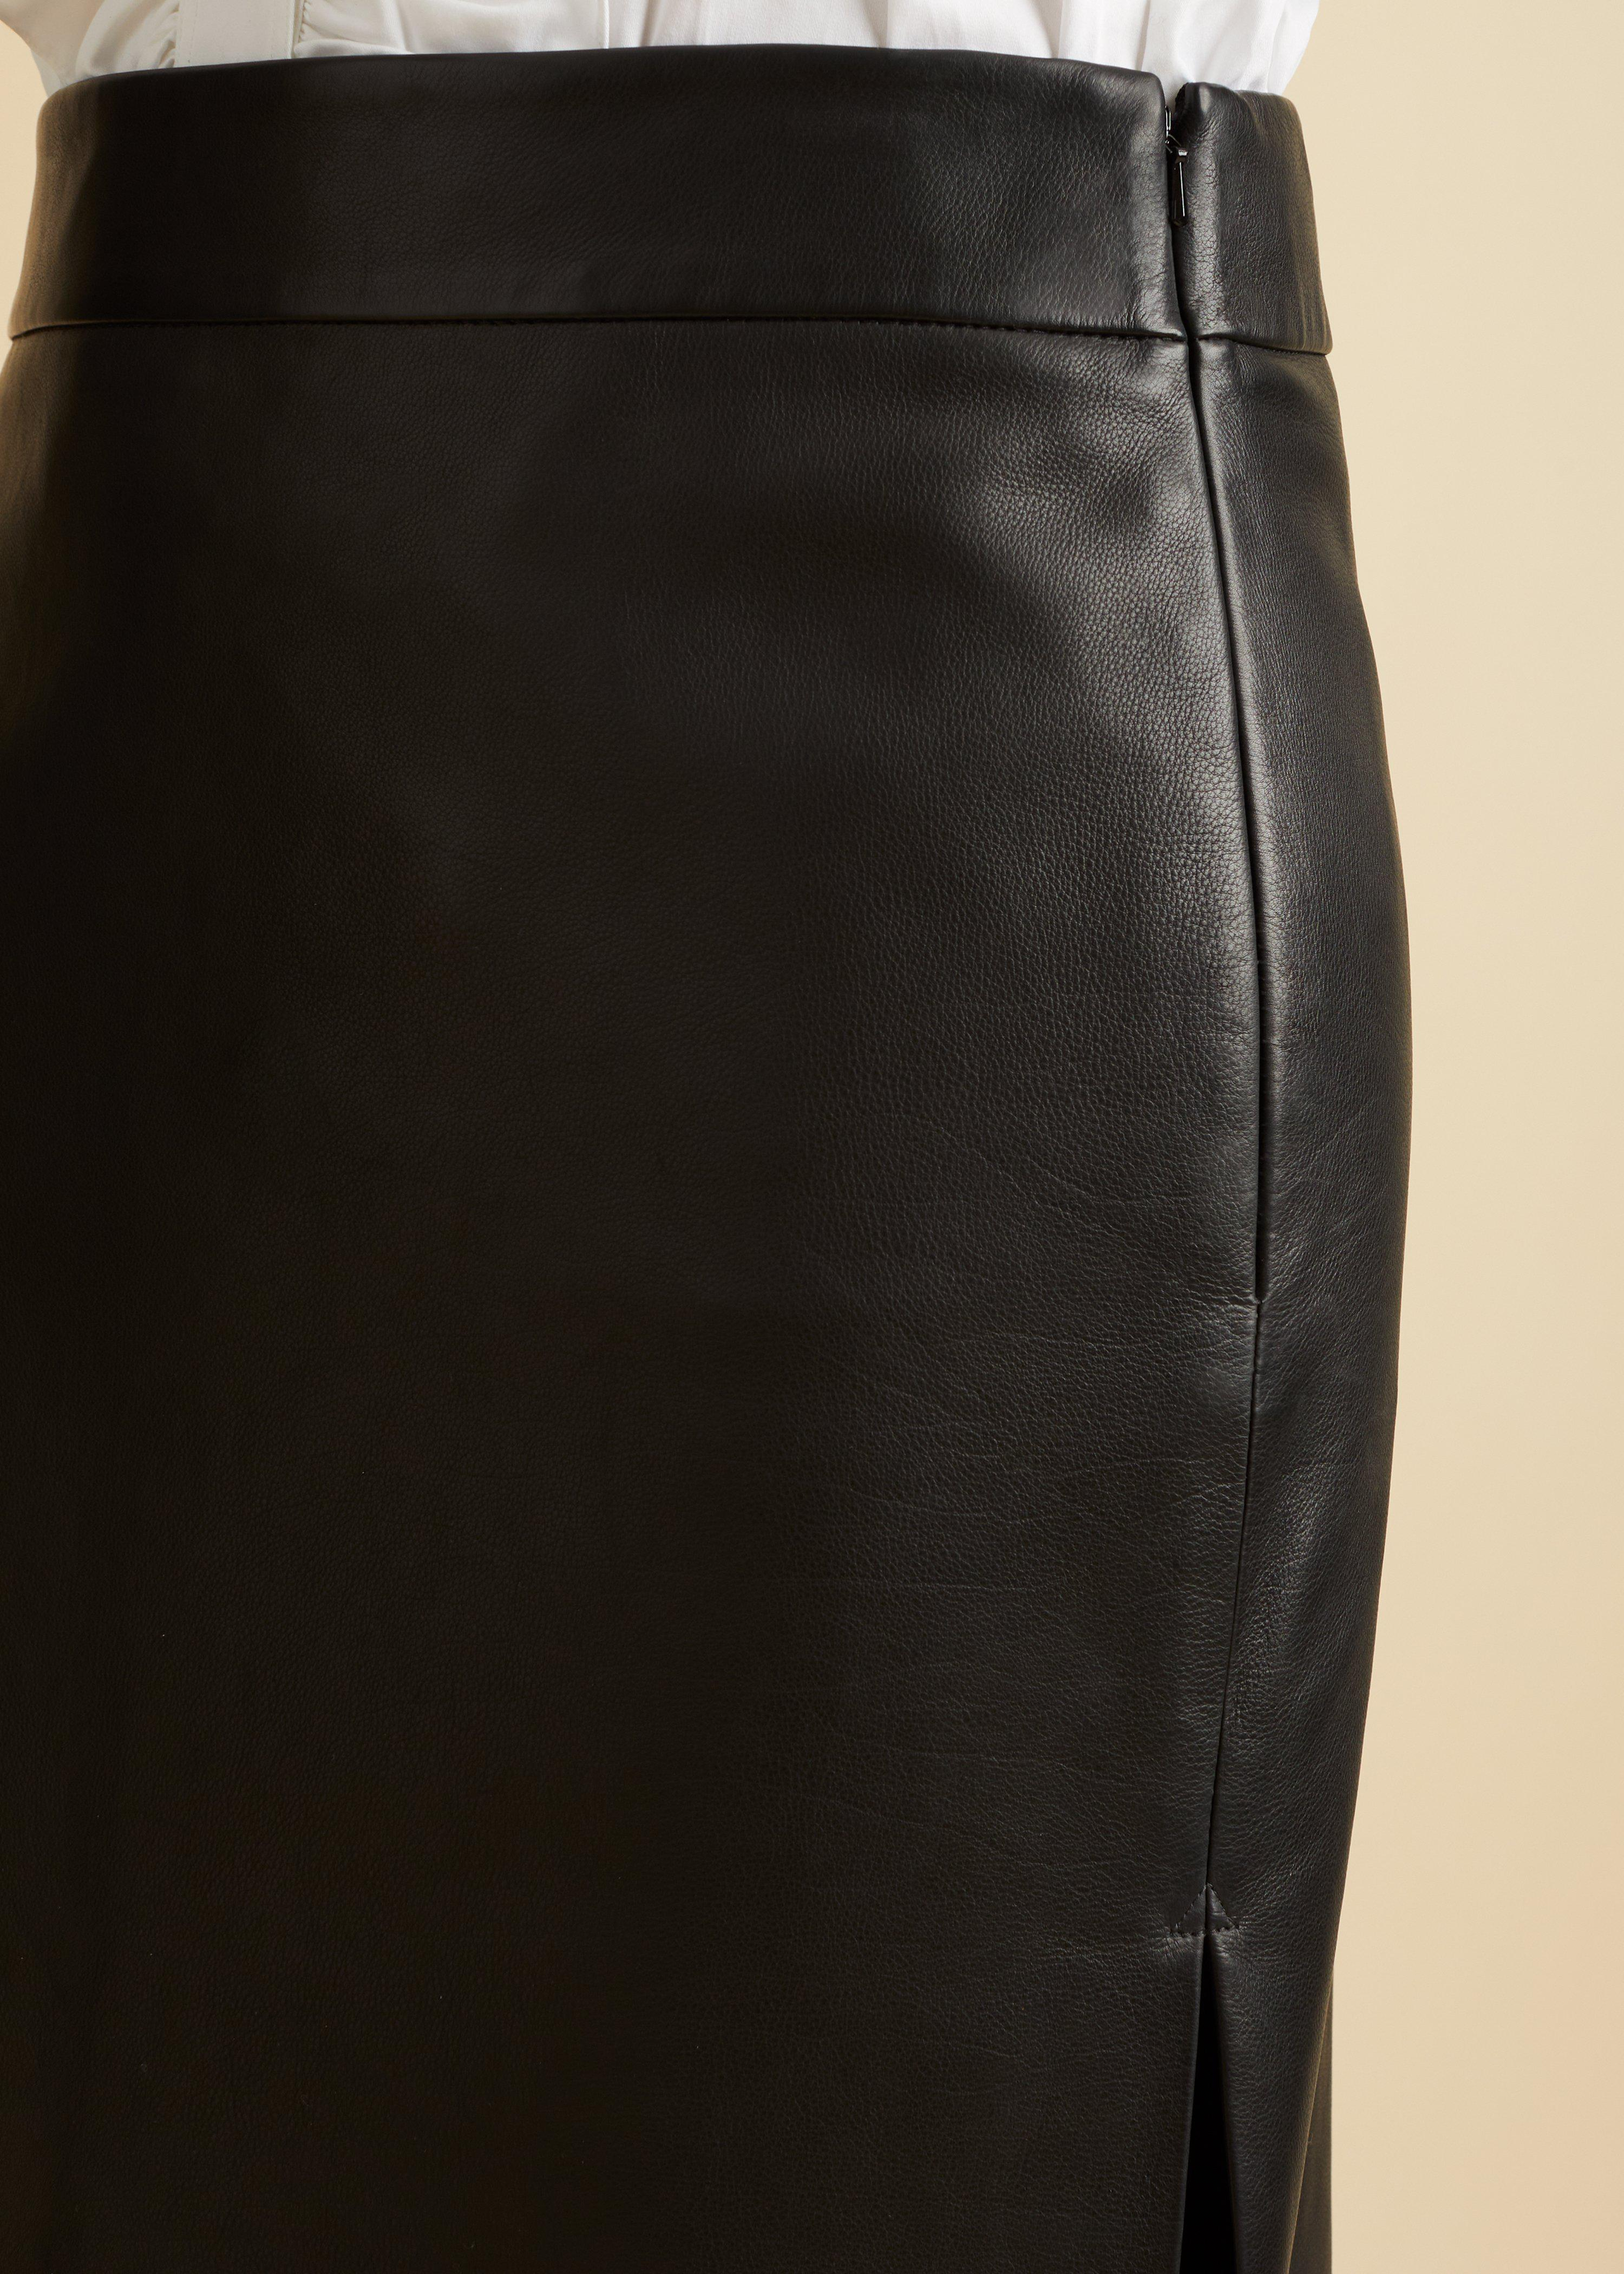 The Myla Skirt in Black Leather 7